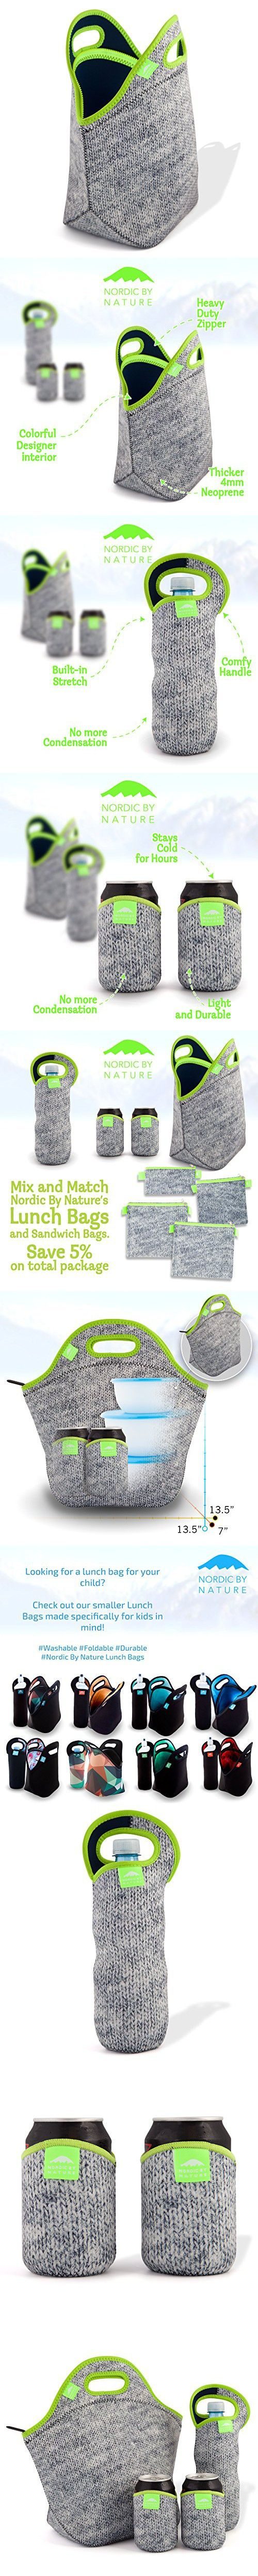 """Nordic by Nature Extra Big Insulated Large Neoprene Lunch Bag Set: Tote + Bottle Cooler + 2 Can Insulators   13,5""""   Stretchy   Reusable   Washable   Great For Lunchboxes & Snacks   Grey & Neon Green"""